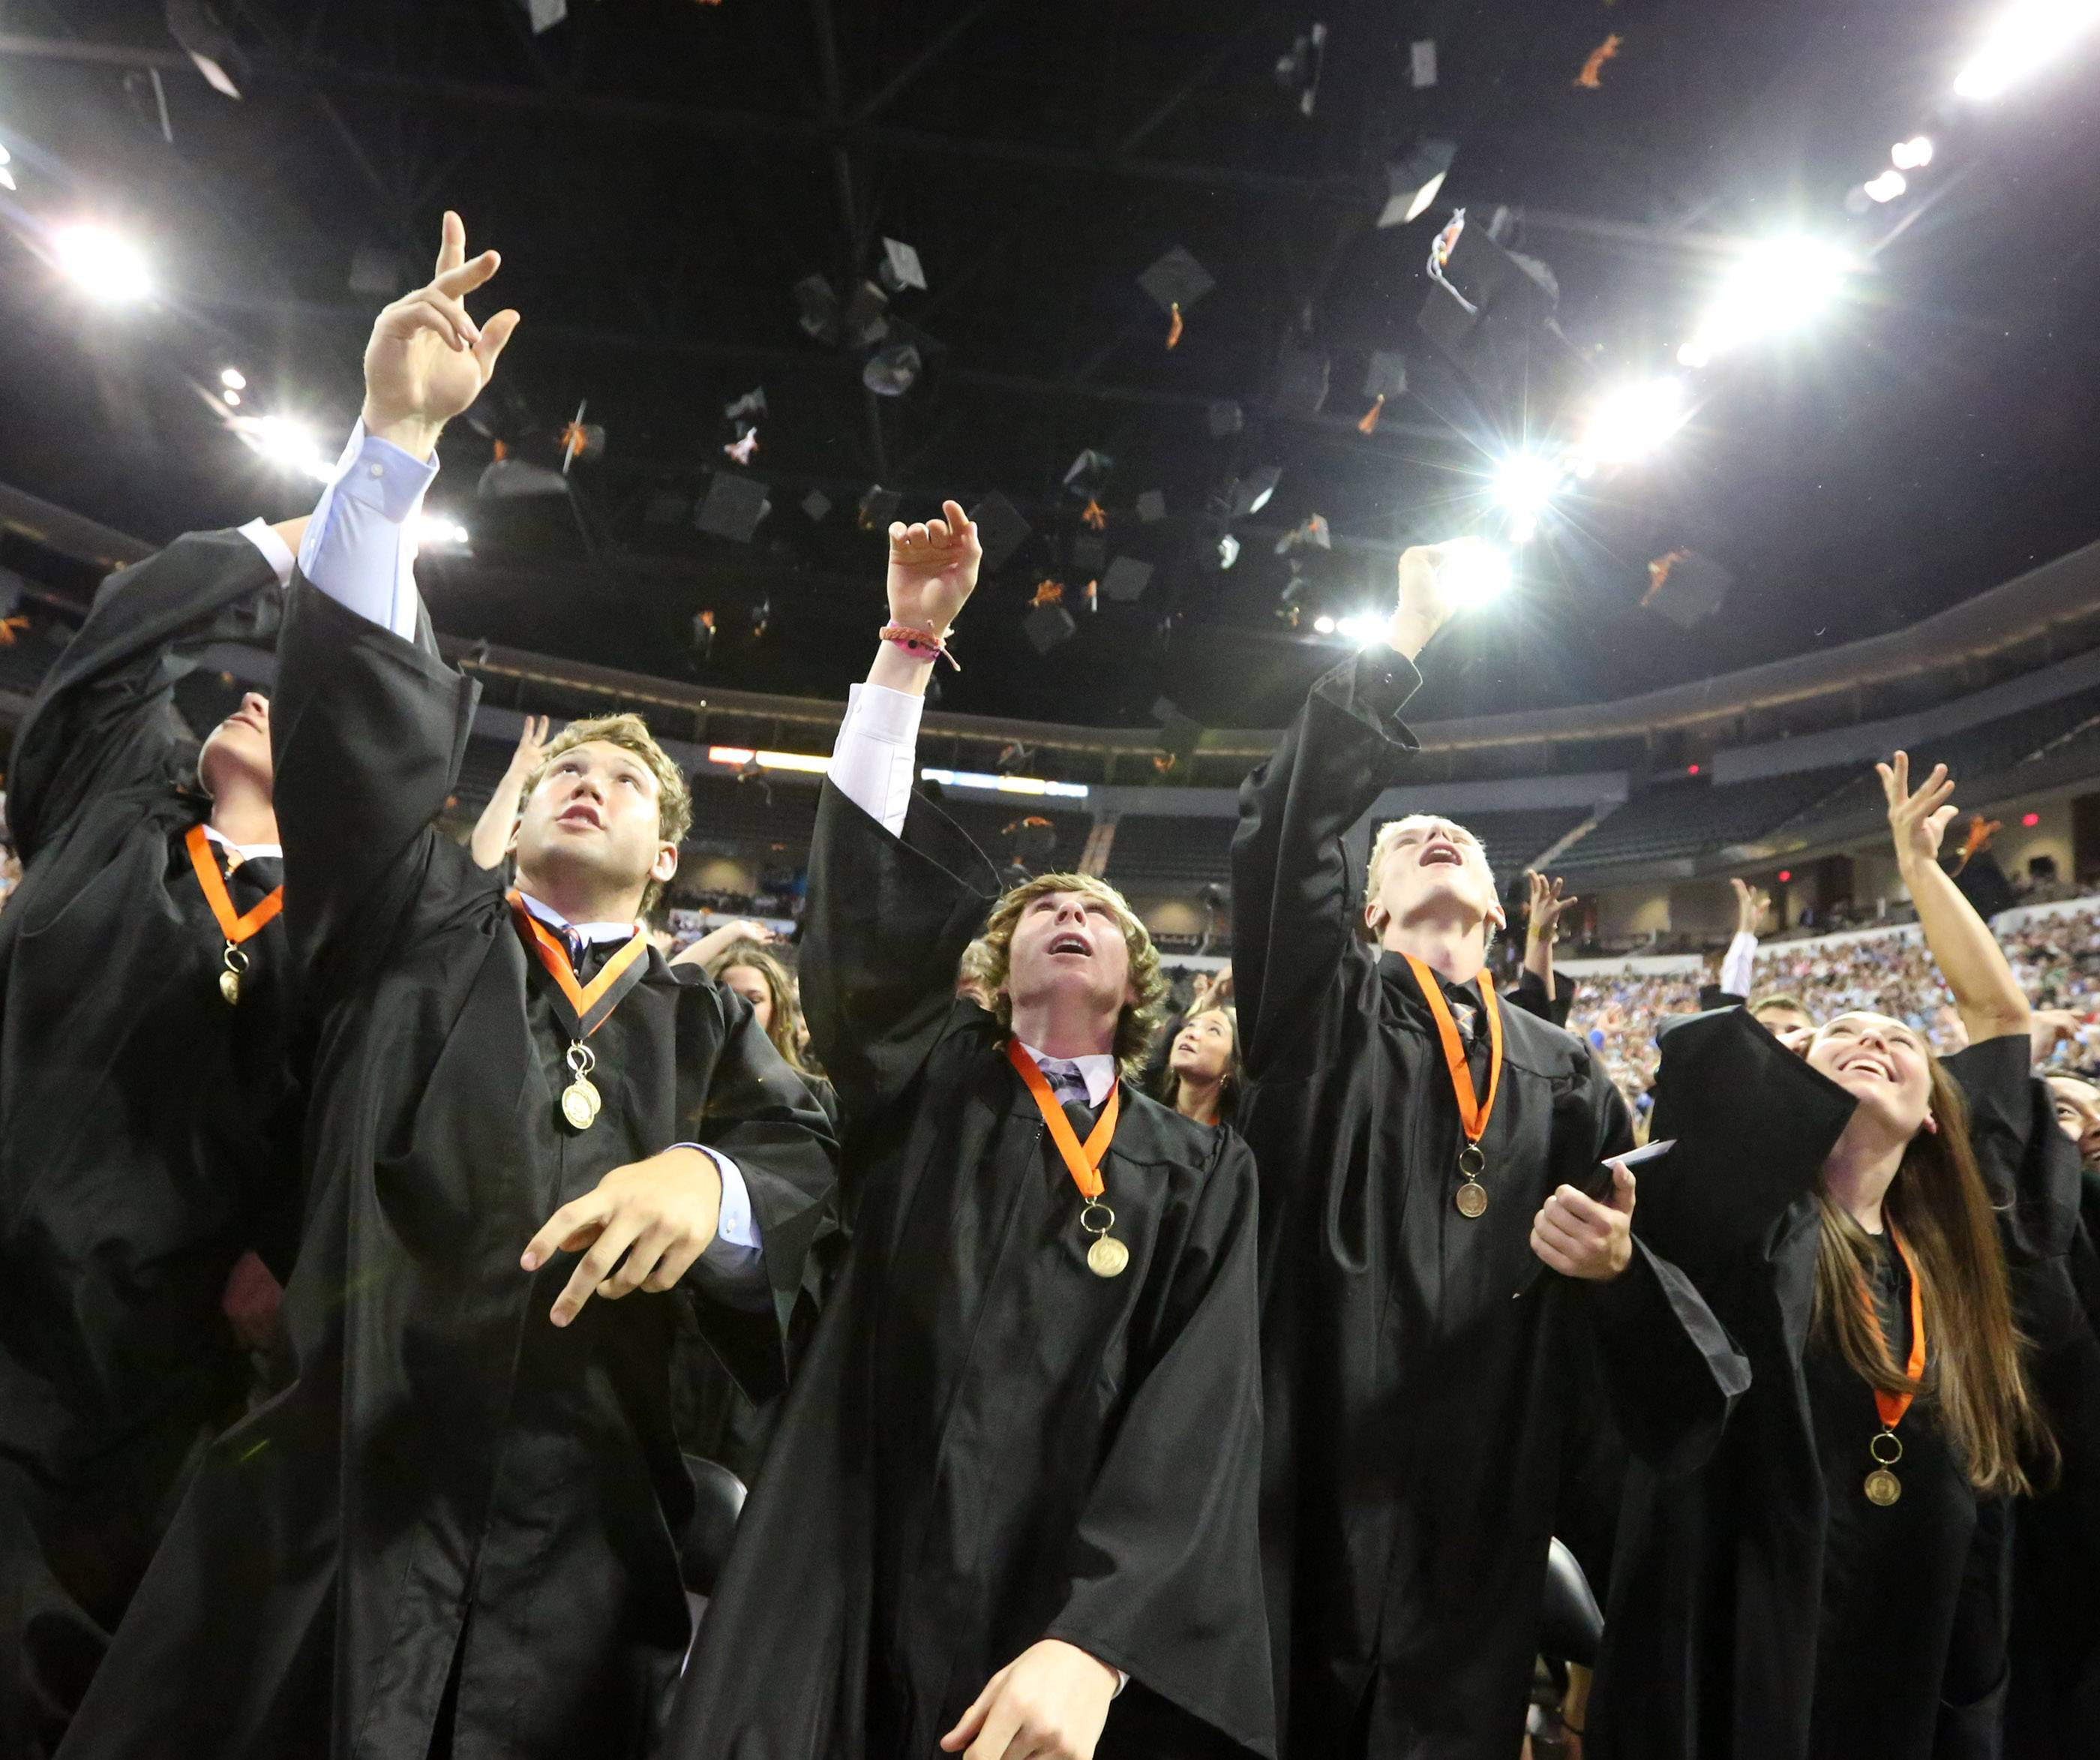 Nick Bagatti, center, and fellow graduates throw their caps in the air .